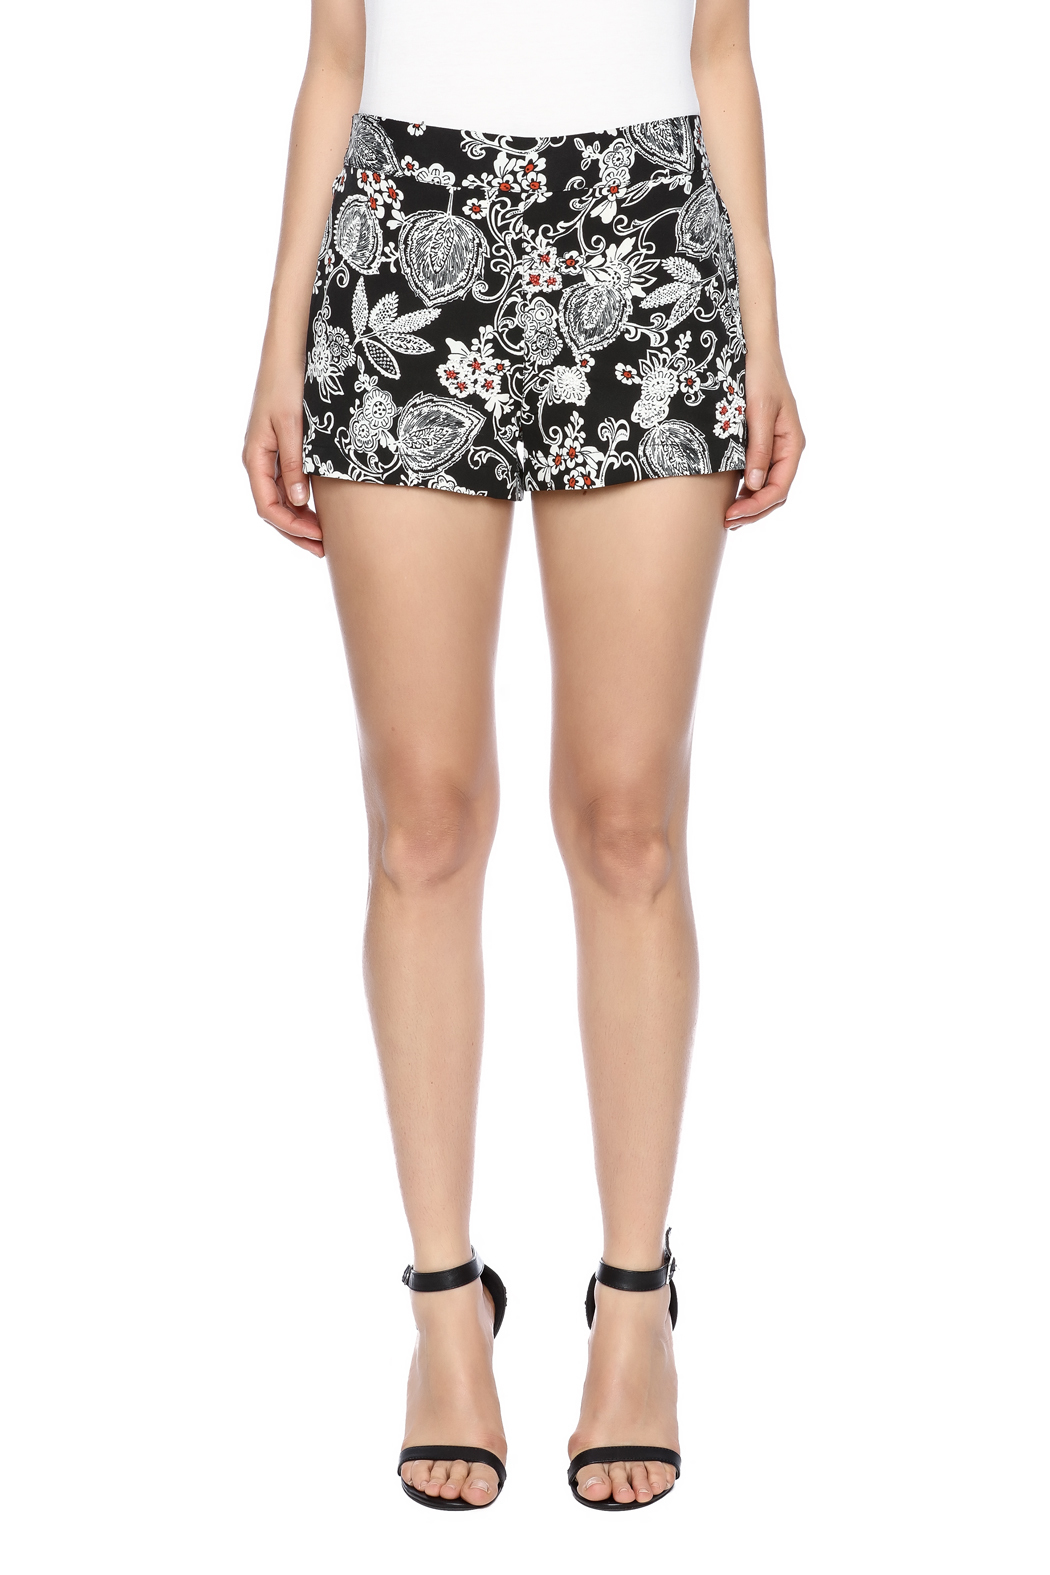 RD Style Beaded Shorts - Side Cropped Image